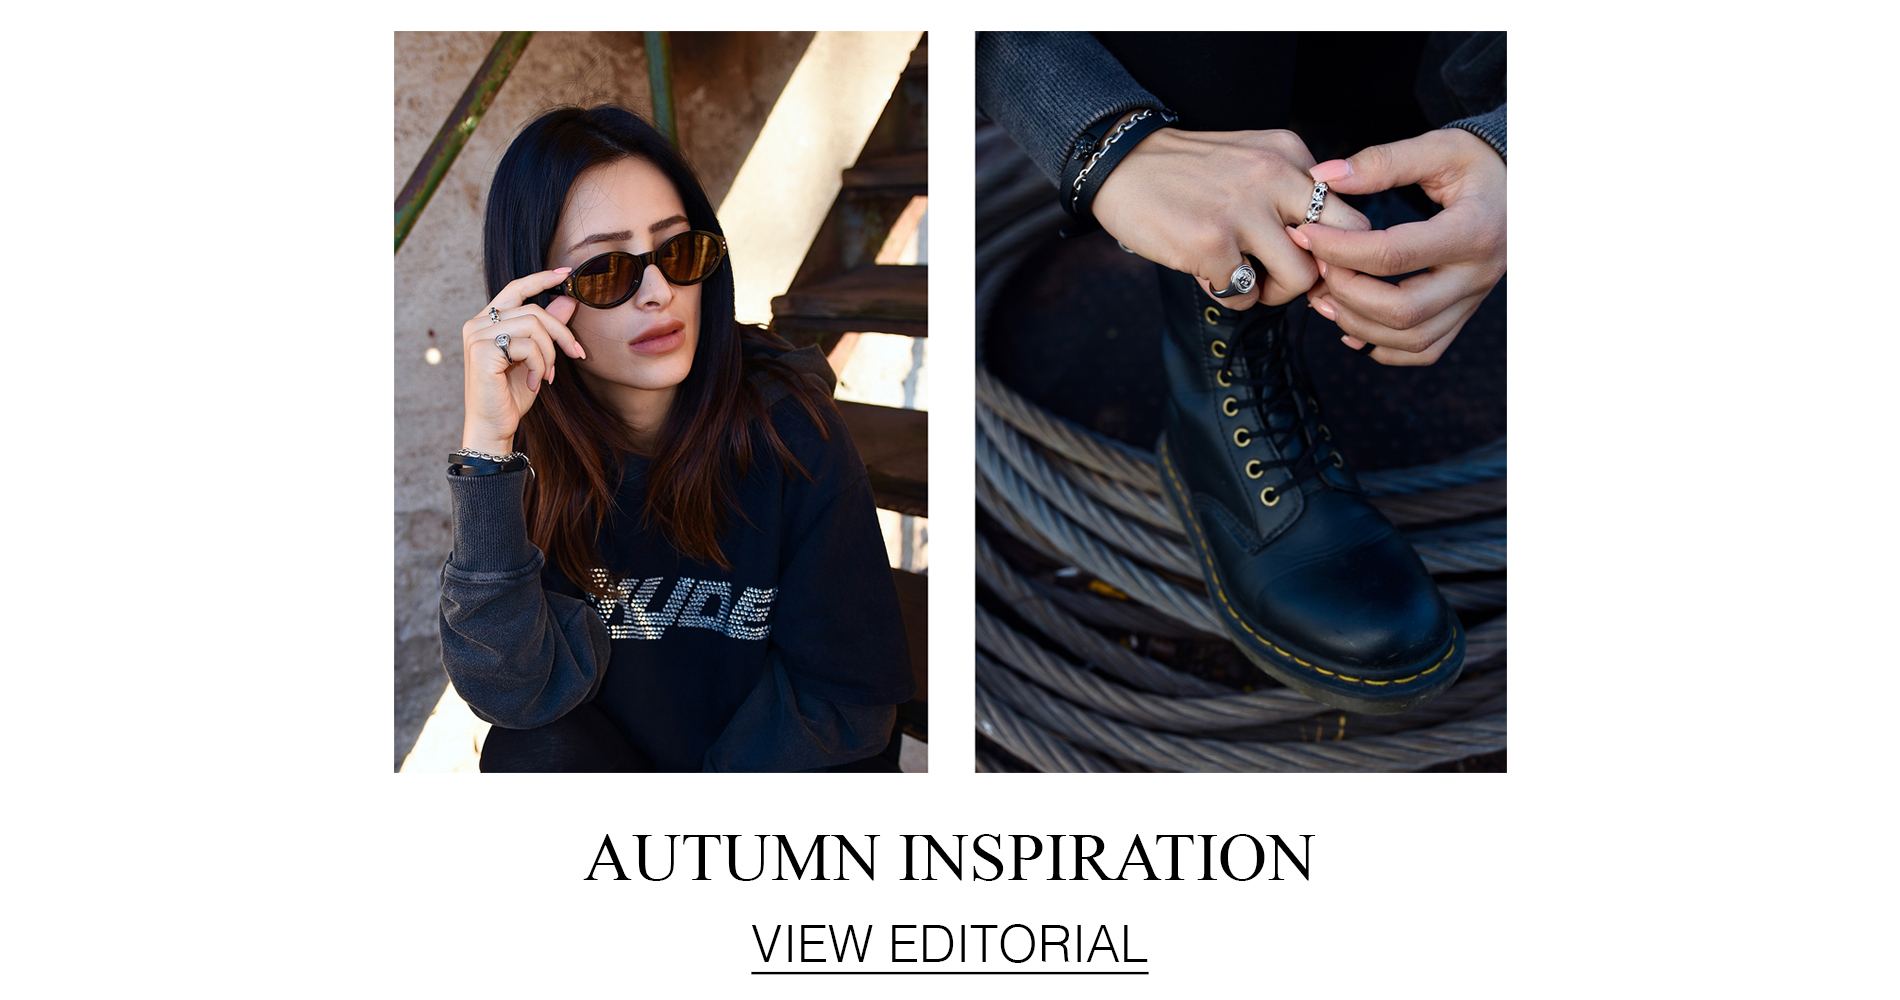 https://shatle.com/sk/blog/172-autumn-inspiration